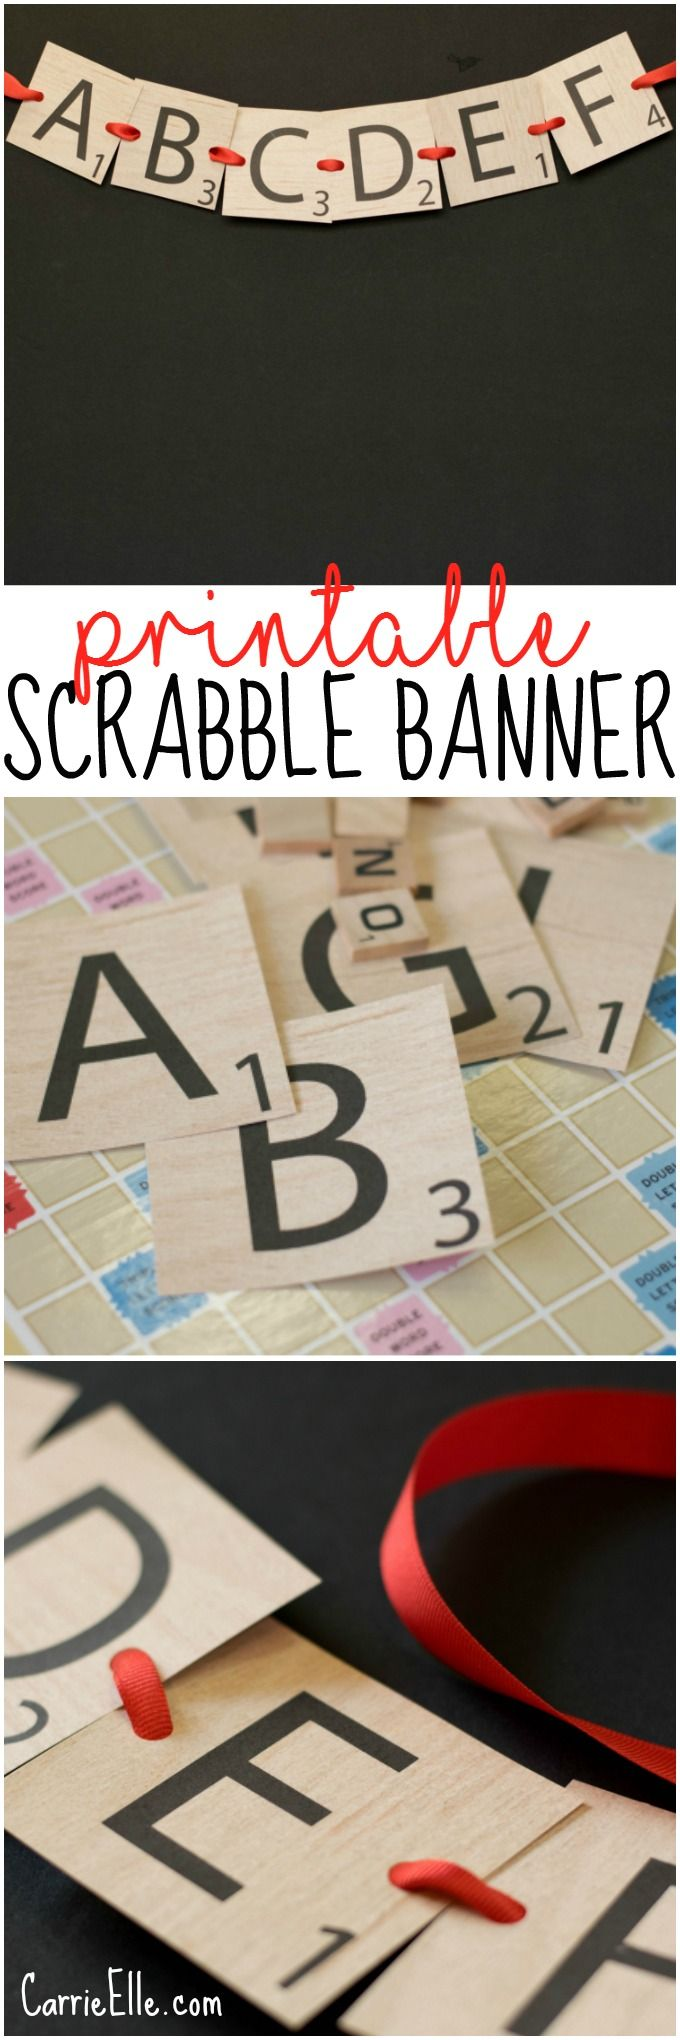 This SCRABBLE Letter Printable Banner is so fun - and you can download it for free!                                                                                                                                                                                 More